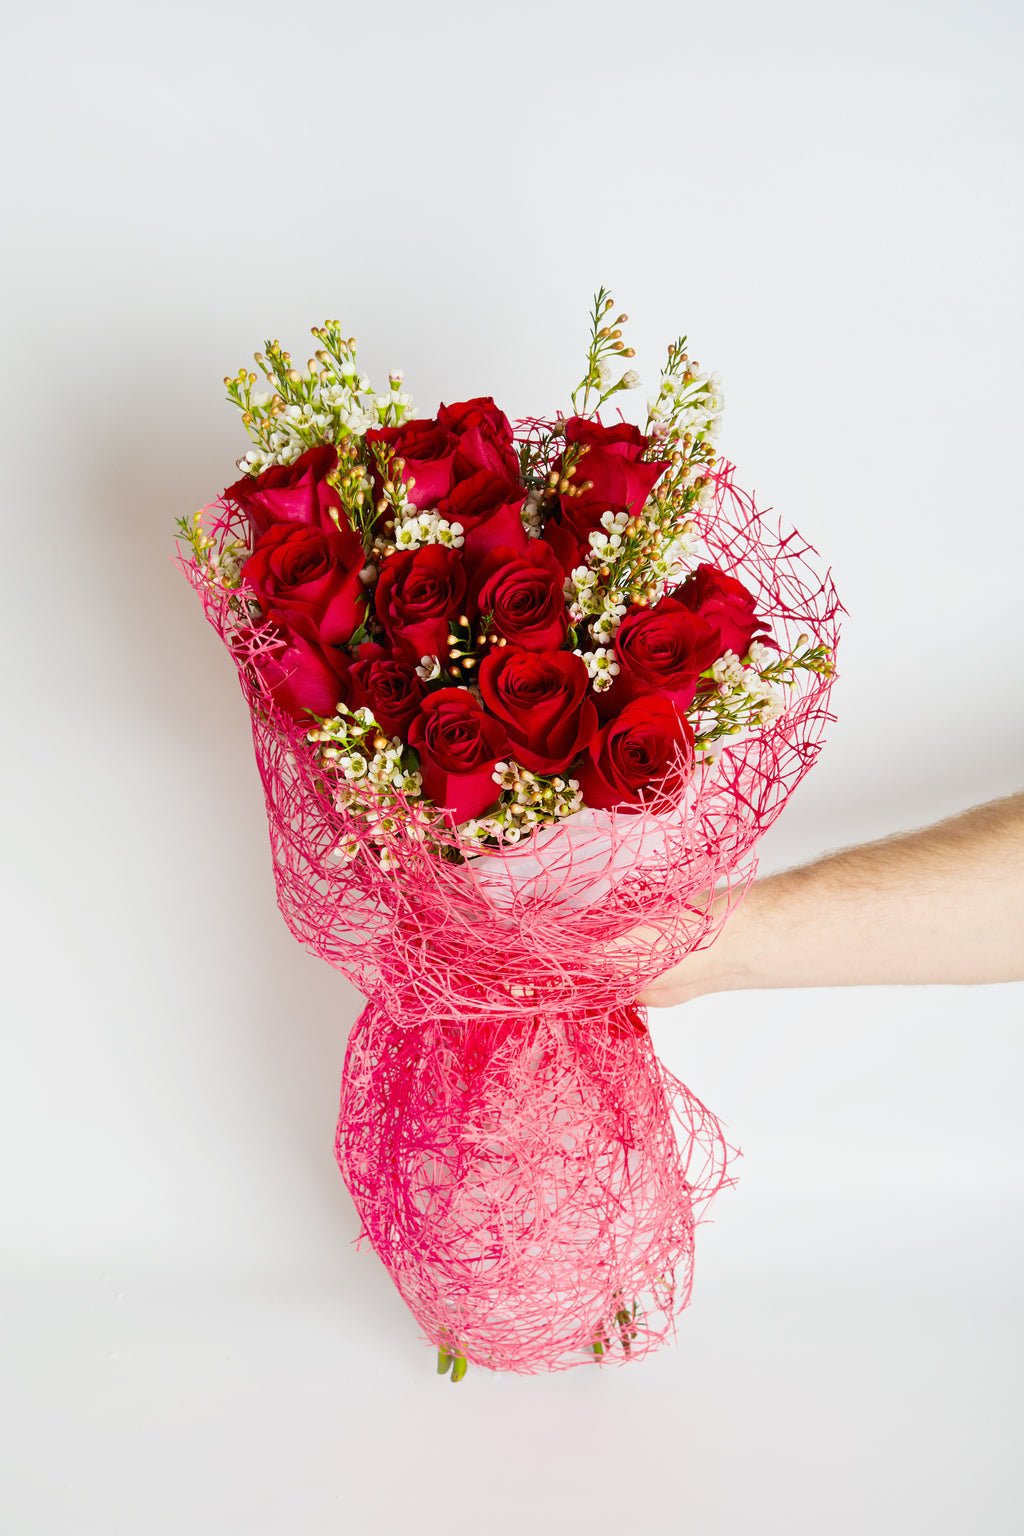 Bouquet of premium red roses